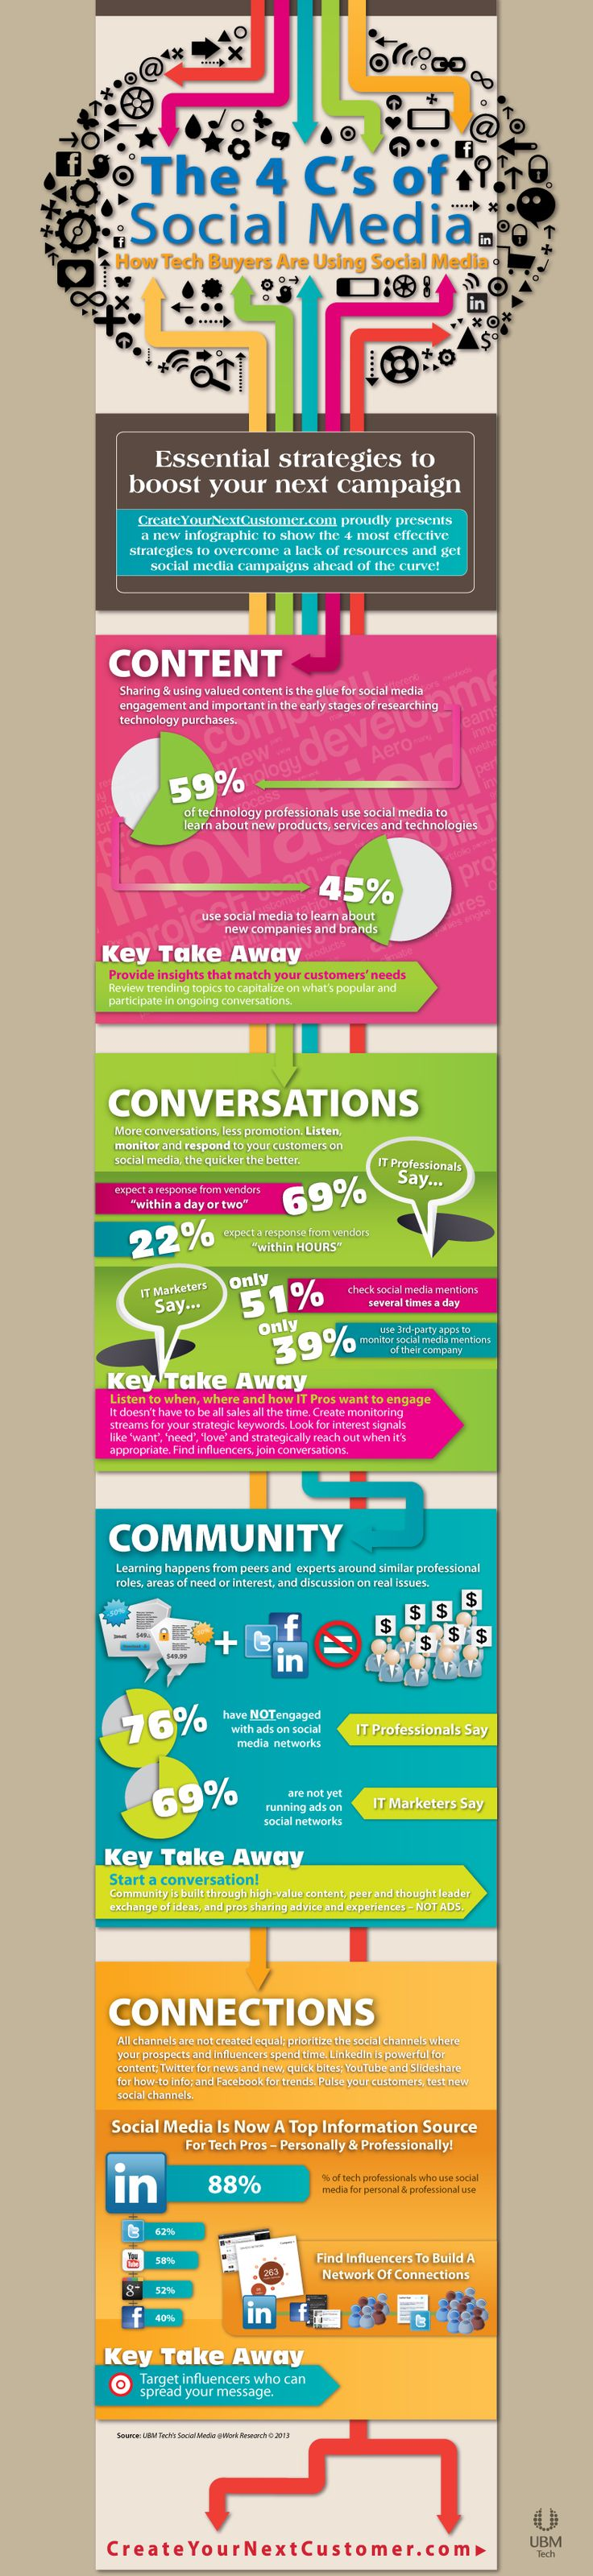 The 4 C's of social media: content, conversations, community, connections #infographic #socialmedia - No B.S. University http://www.NOBSU.com